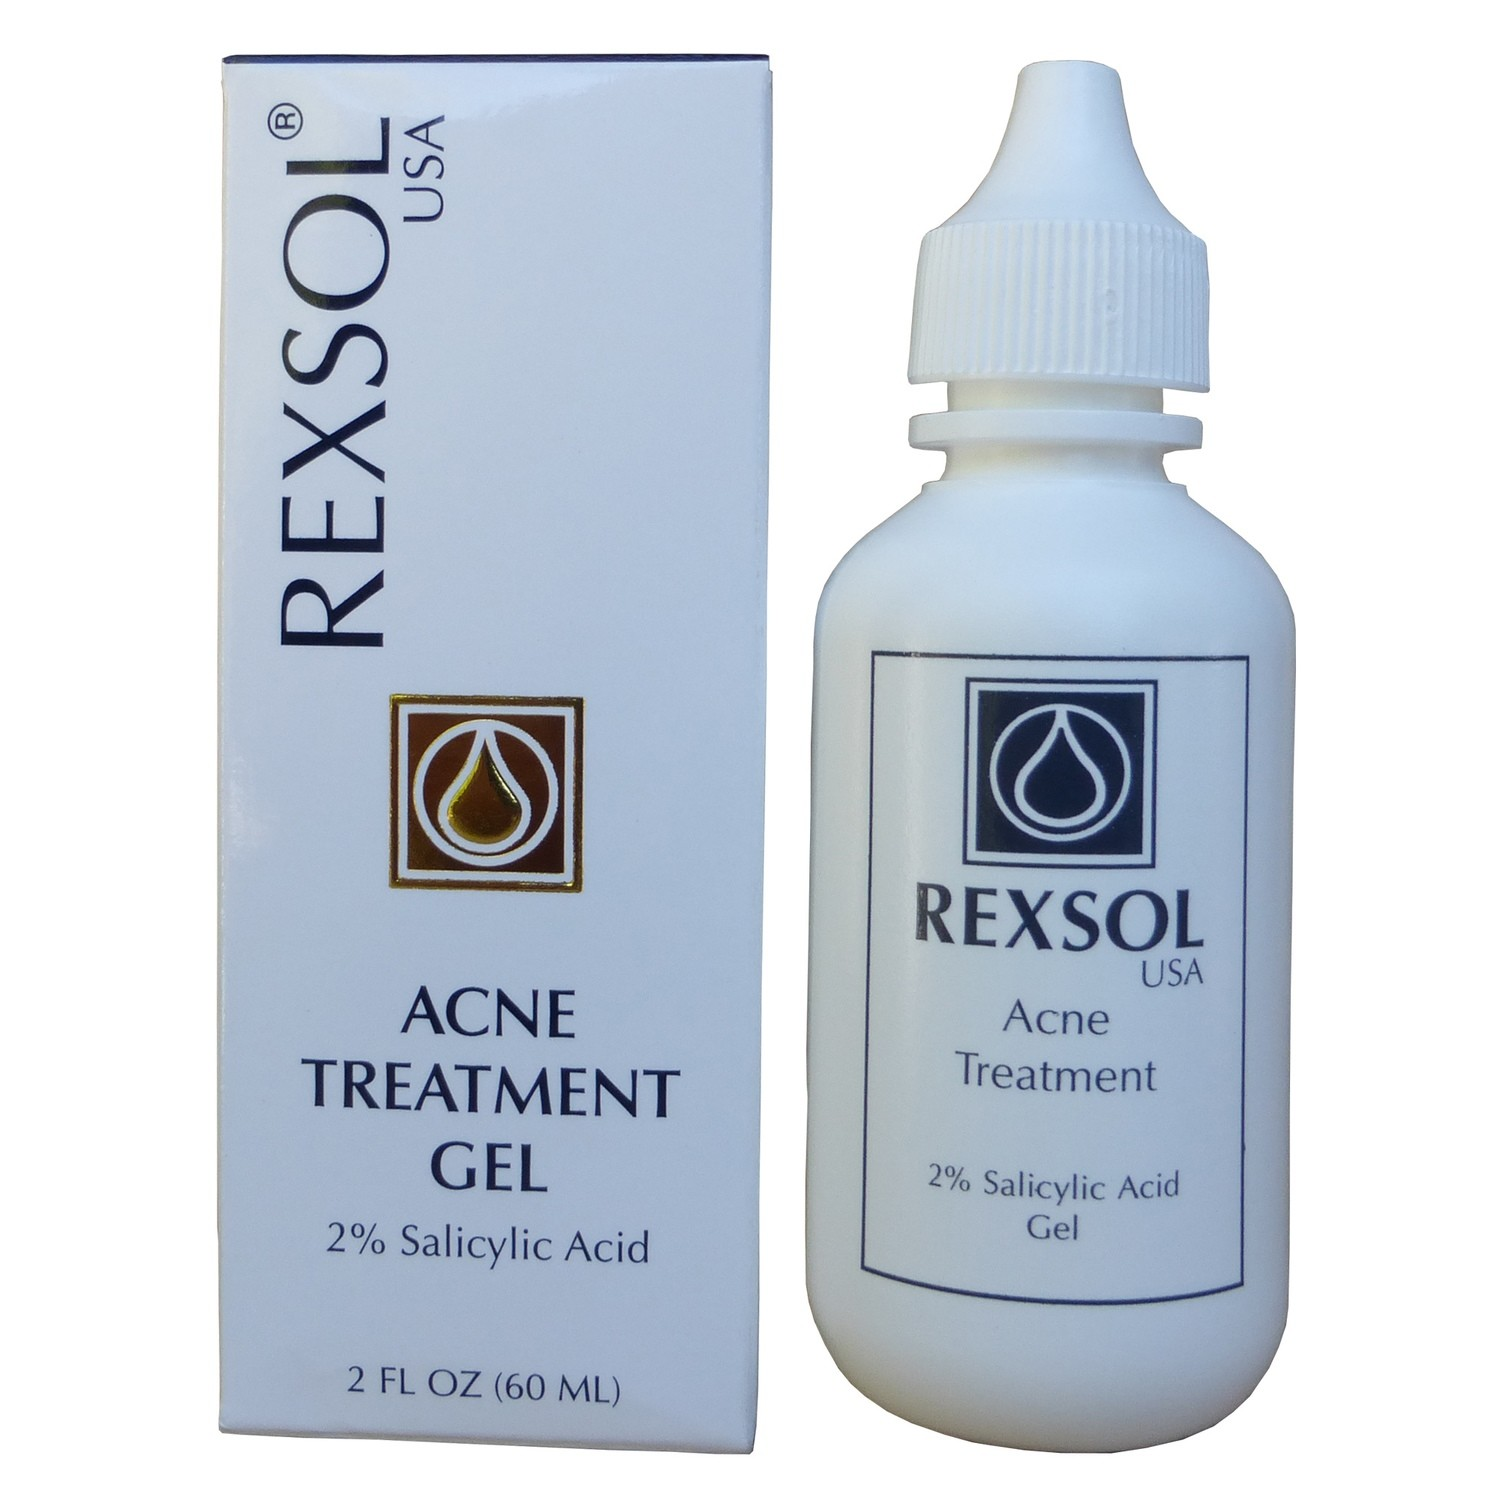 Rexsol Acne Treatment Gel Salicylic Acid Gel